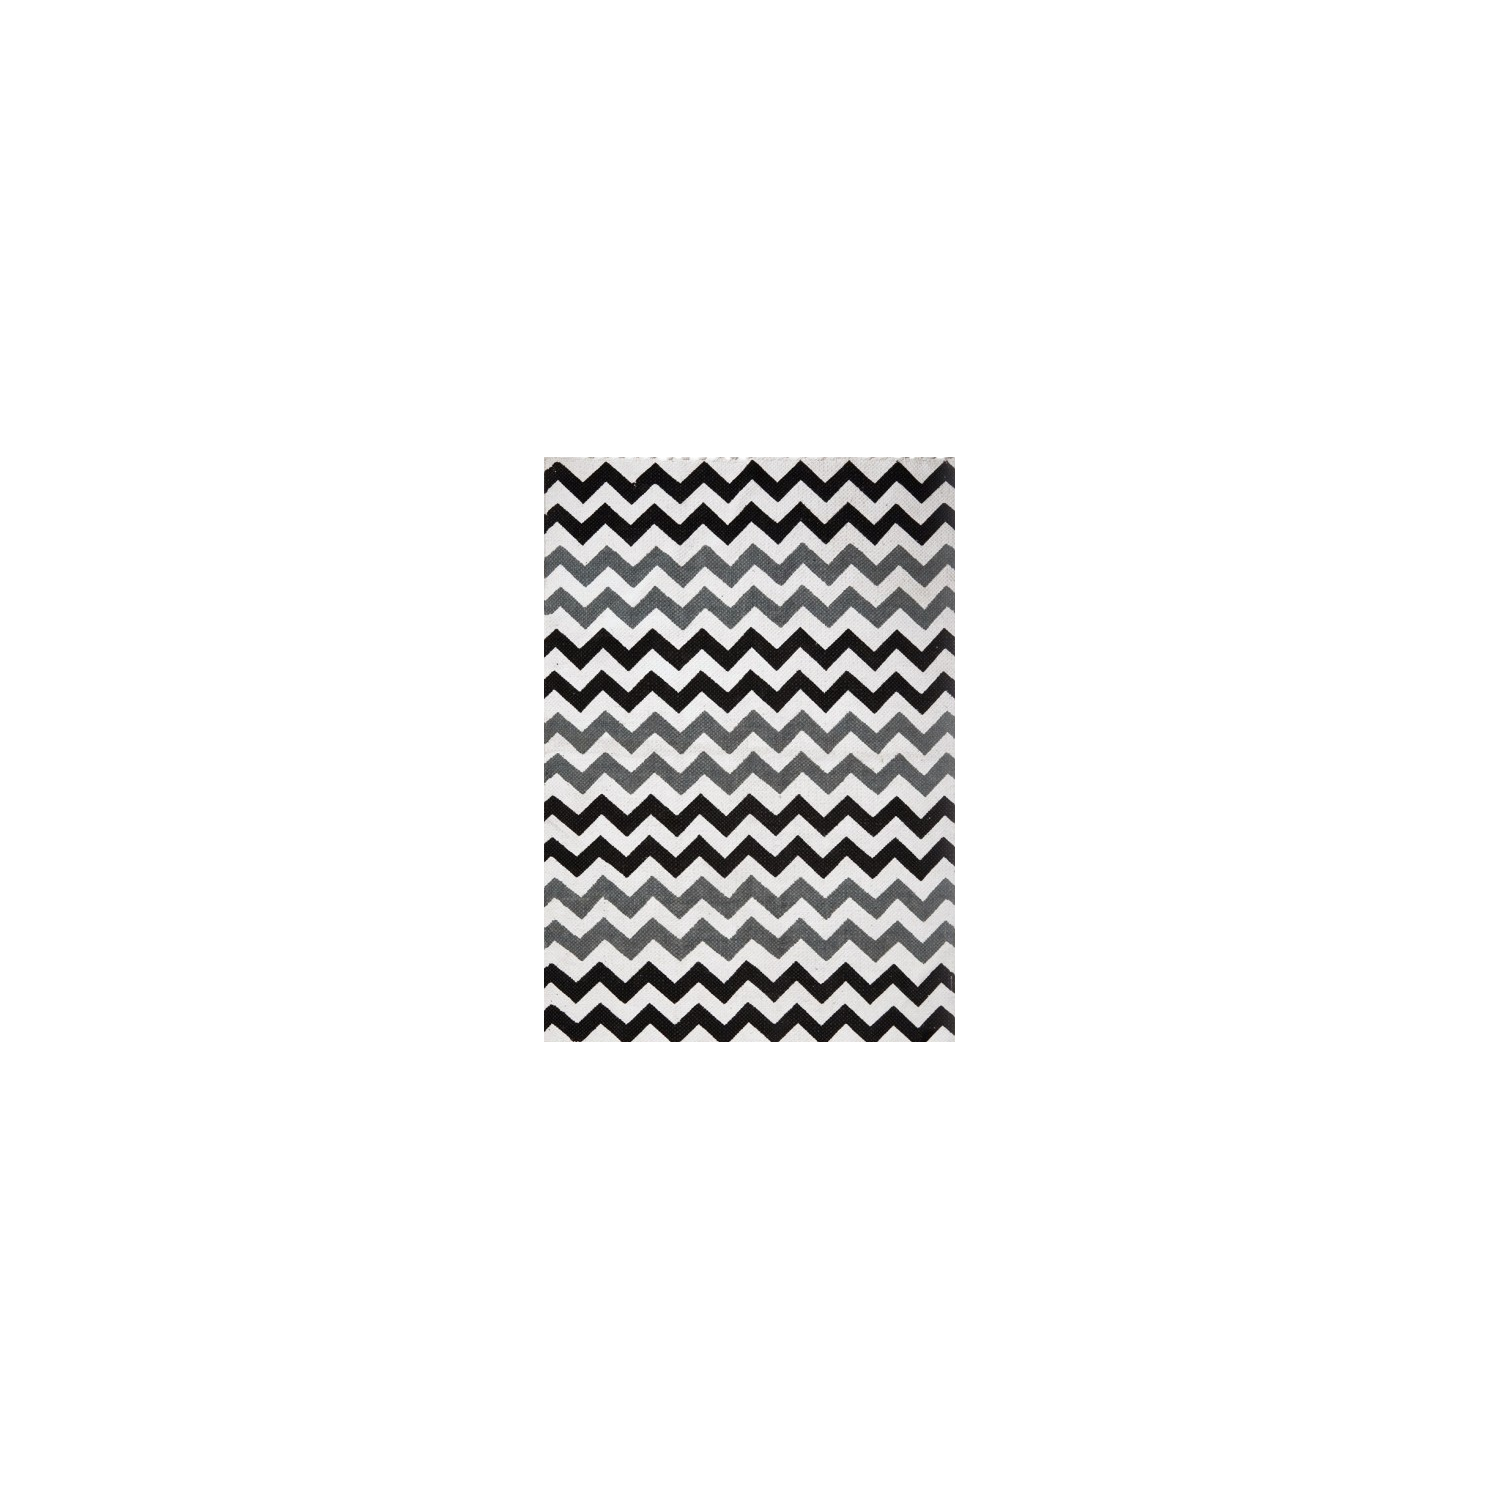 tapis scandinave zigzag noir et gris. Black Bedroom Furniture Sets. Home Design Ideas